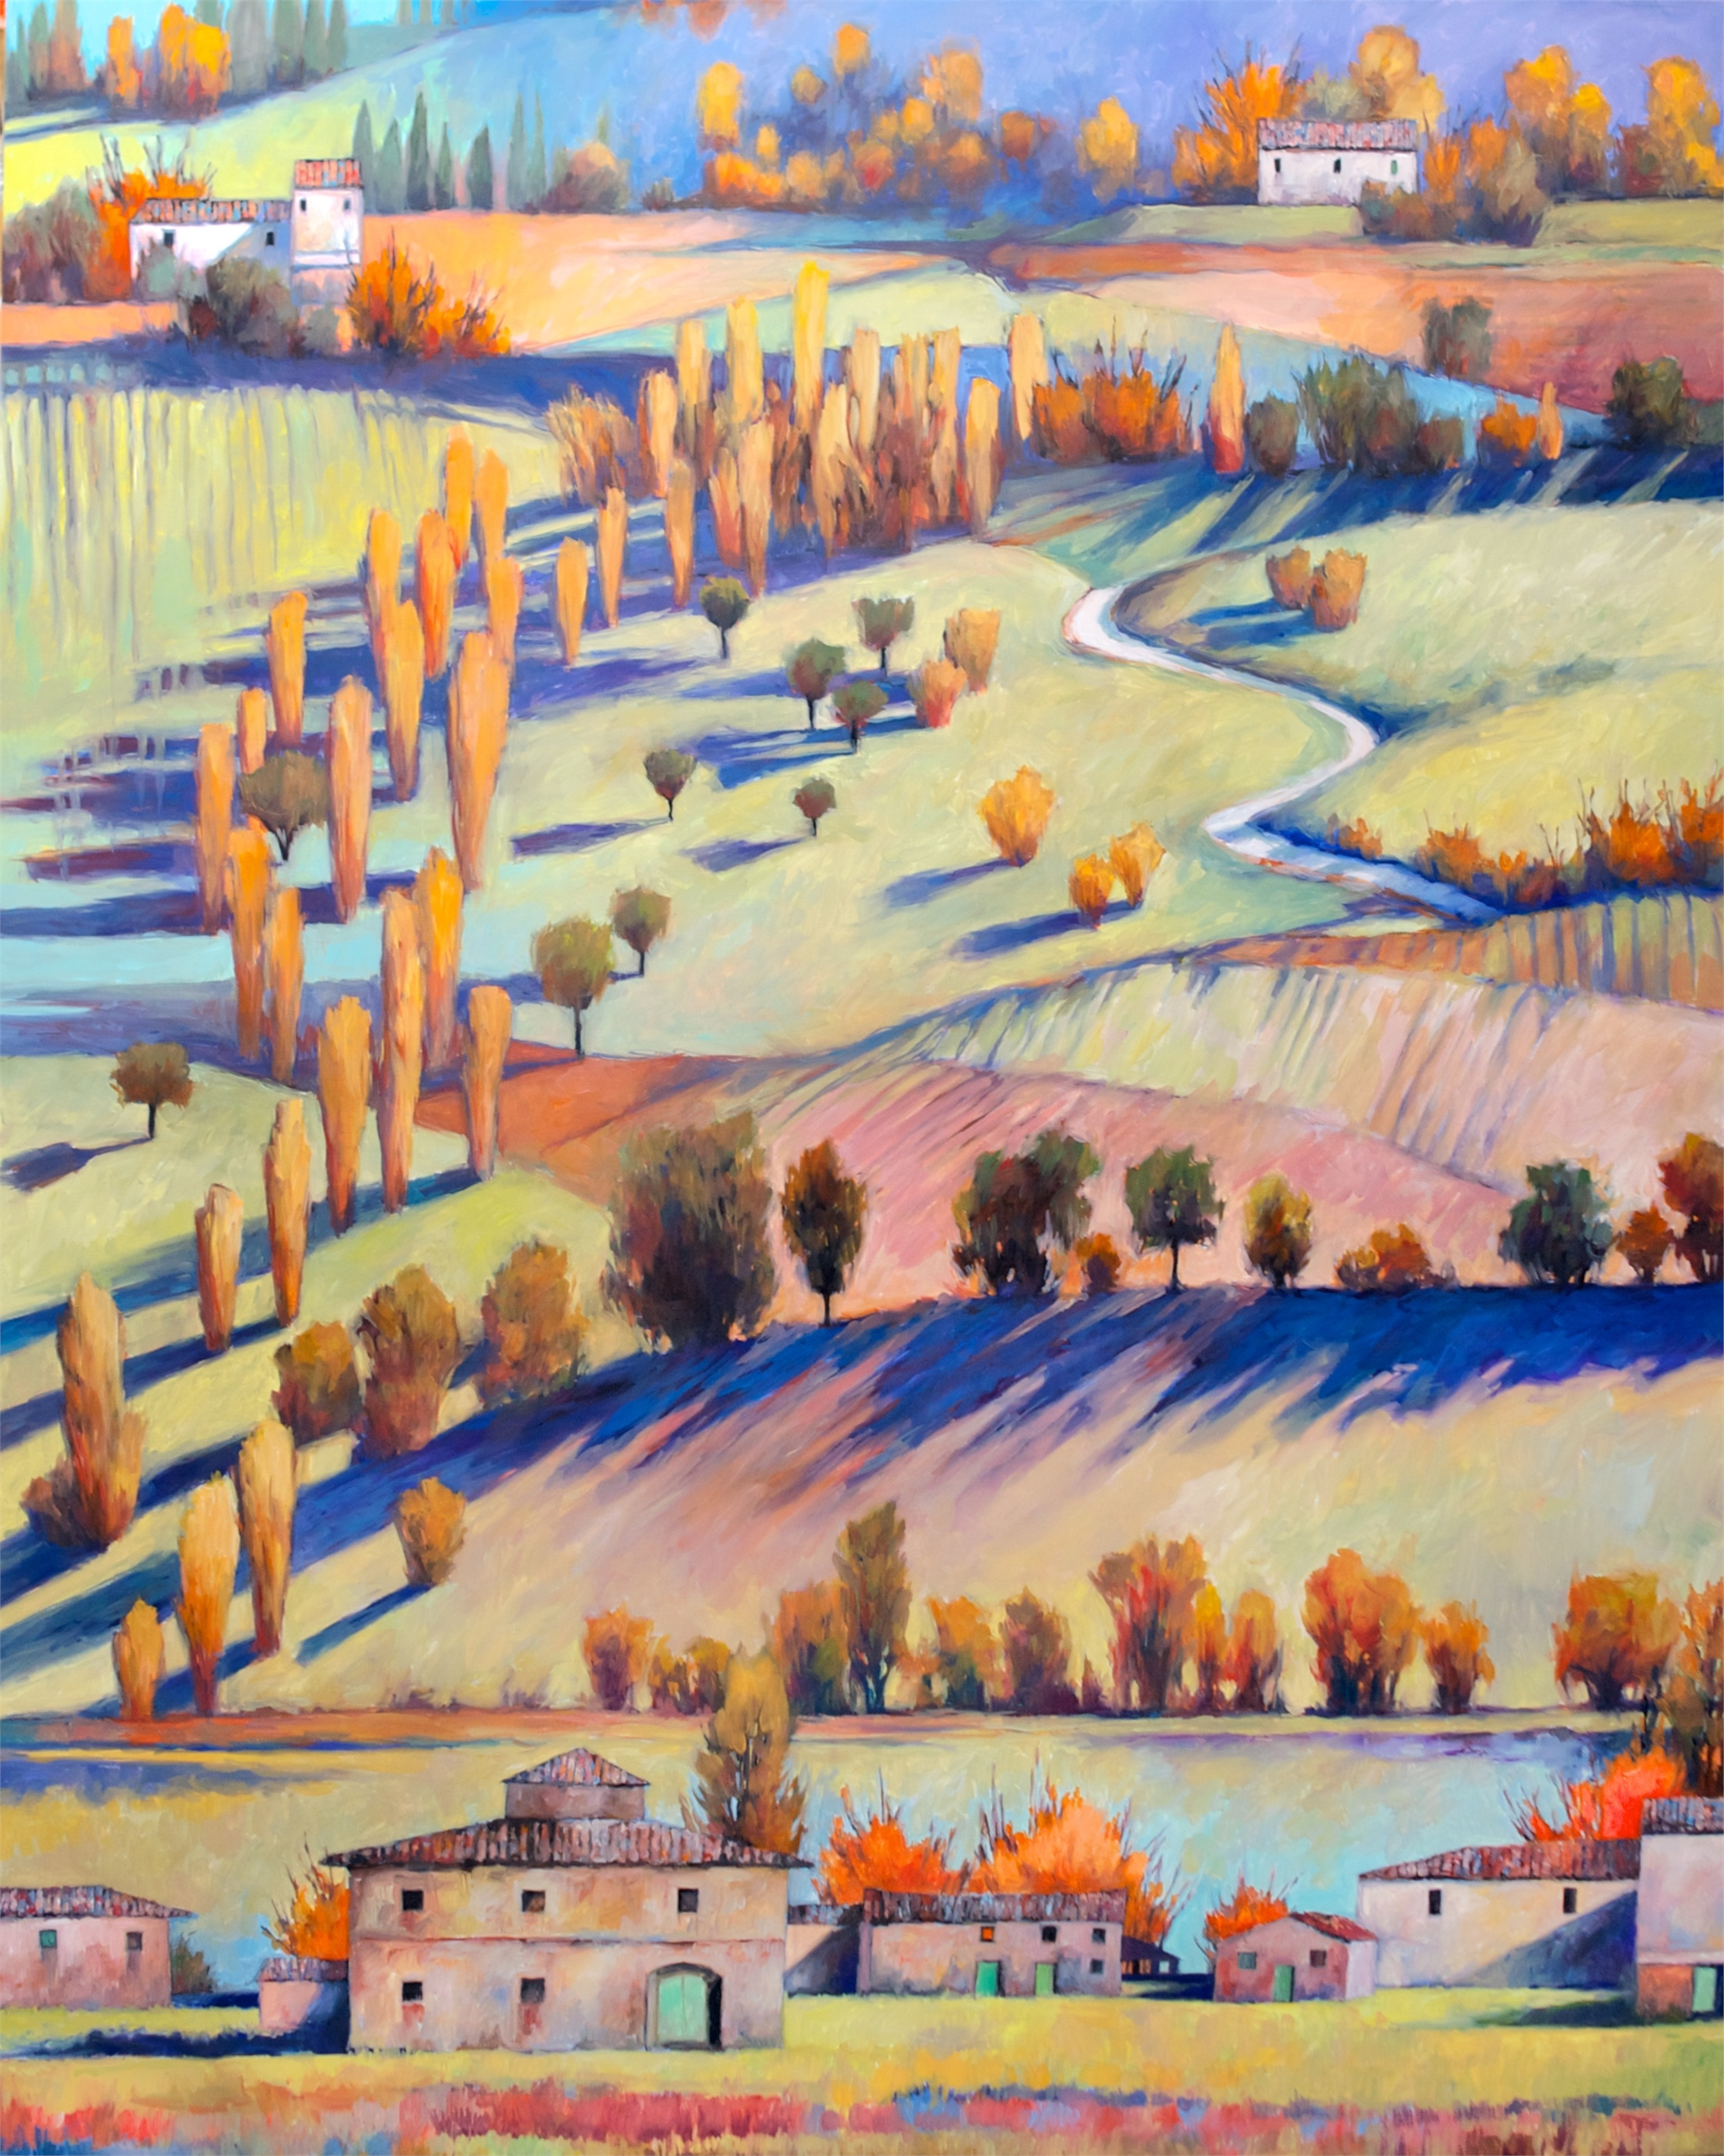 Landscape in Layers by Sandra Langston